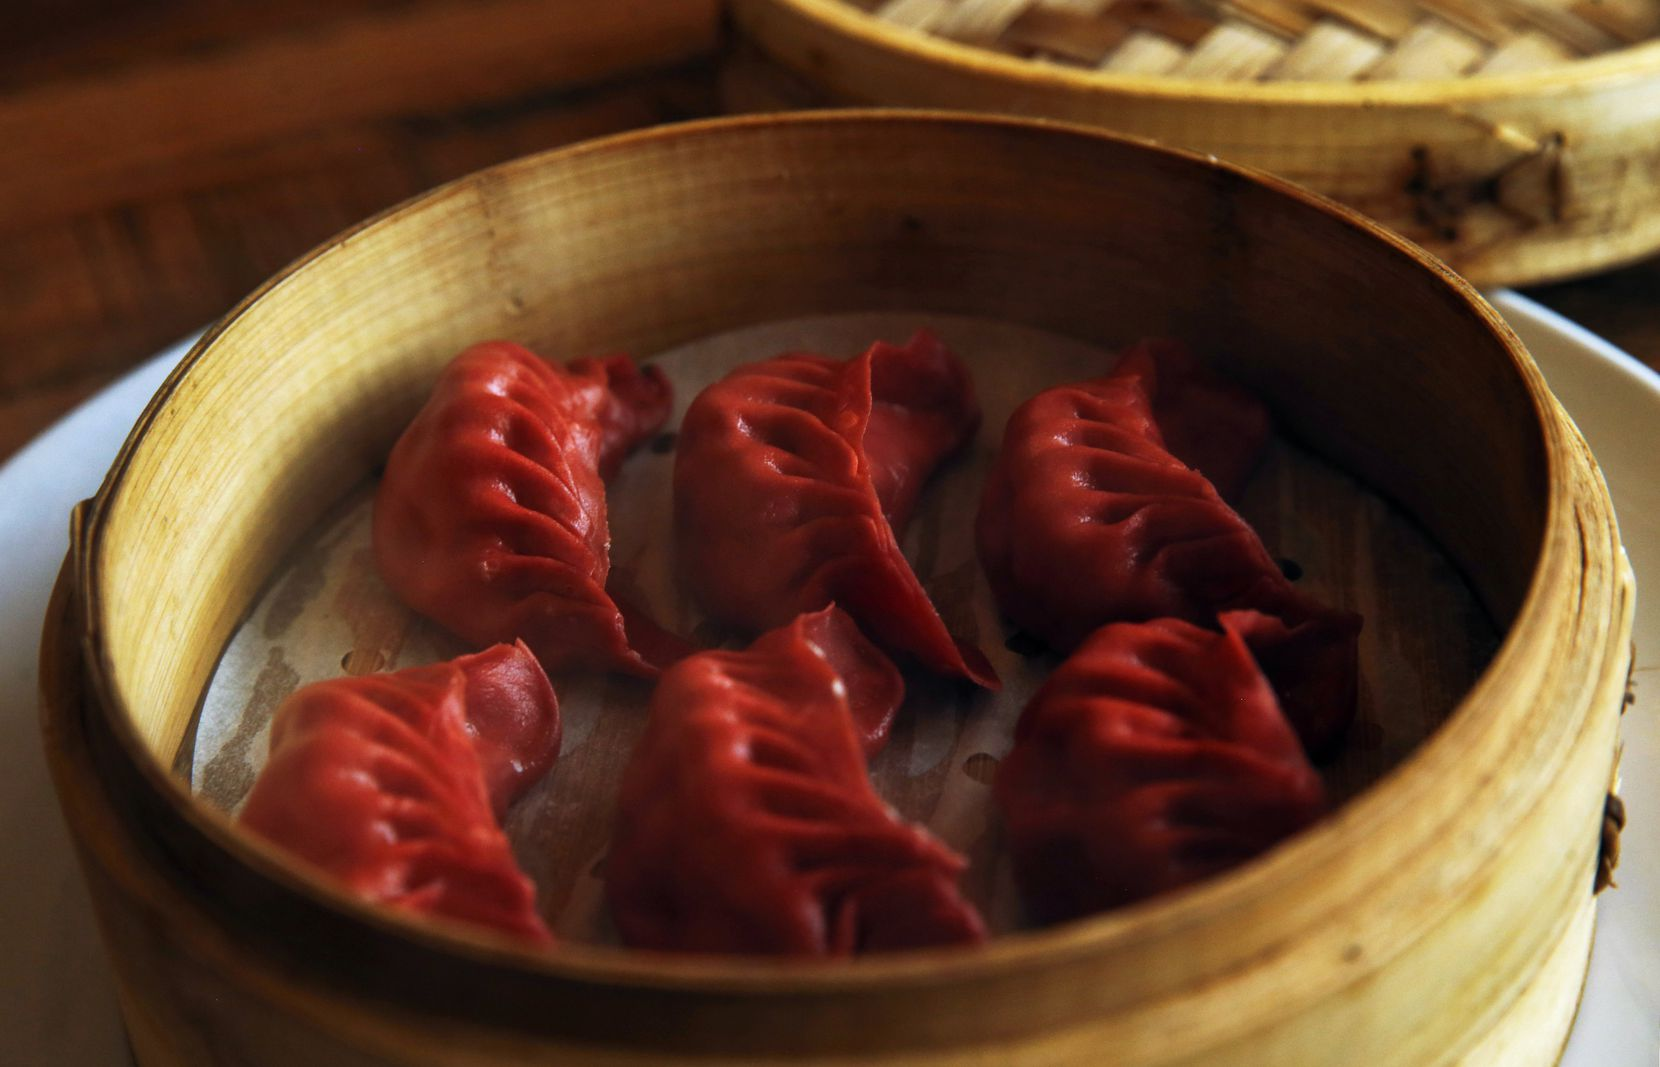 Three Delicacy dumplings are filled with shrimp, scallop, pollock and pork (that's four, but who's counting). The wrapper is tinted with beet.